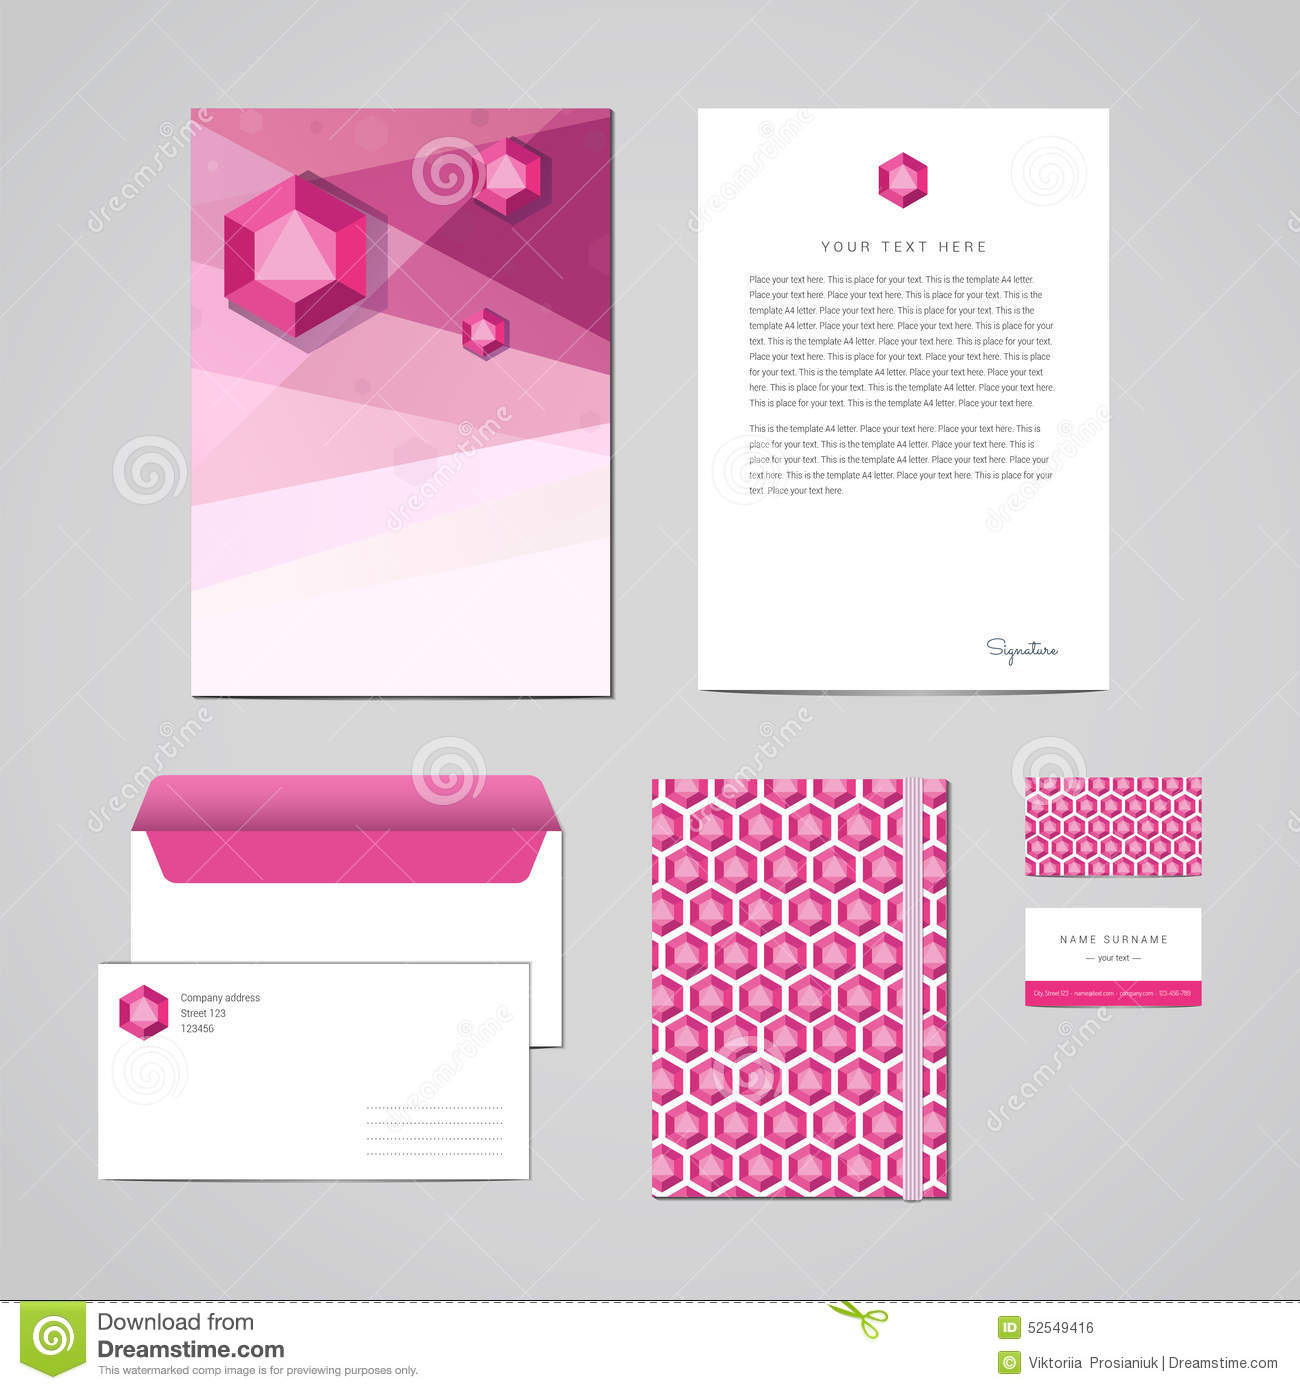 Corporate identity design template documentation for business corporate identity design template documentation for business folder letterhead envelope notebook wajeb Choice Image